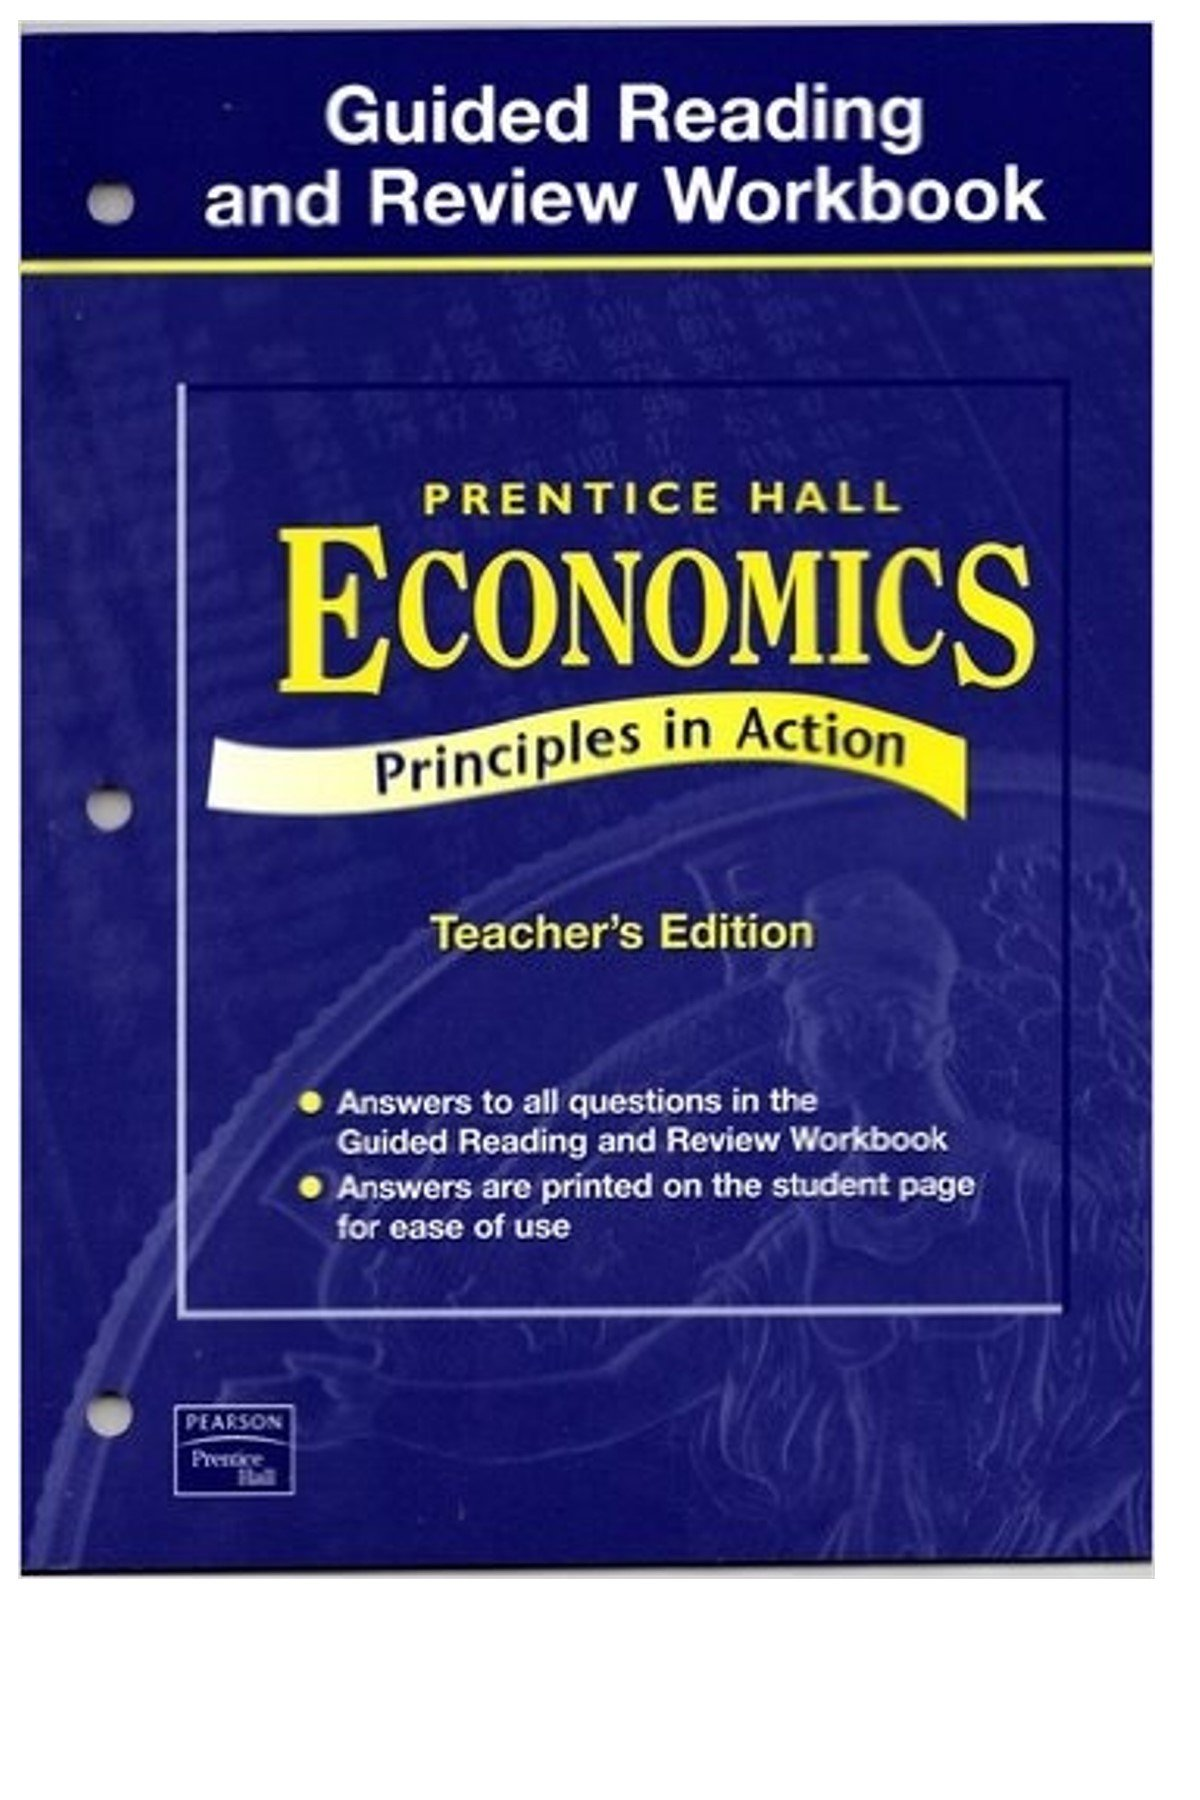 Economics: Principles in Action- Guided Reading and Review Workbook,  Teacher's Edition: 9780130679482: Amazon.com: Books